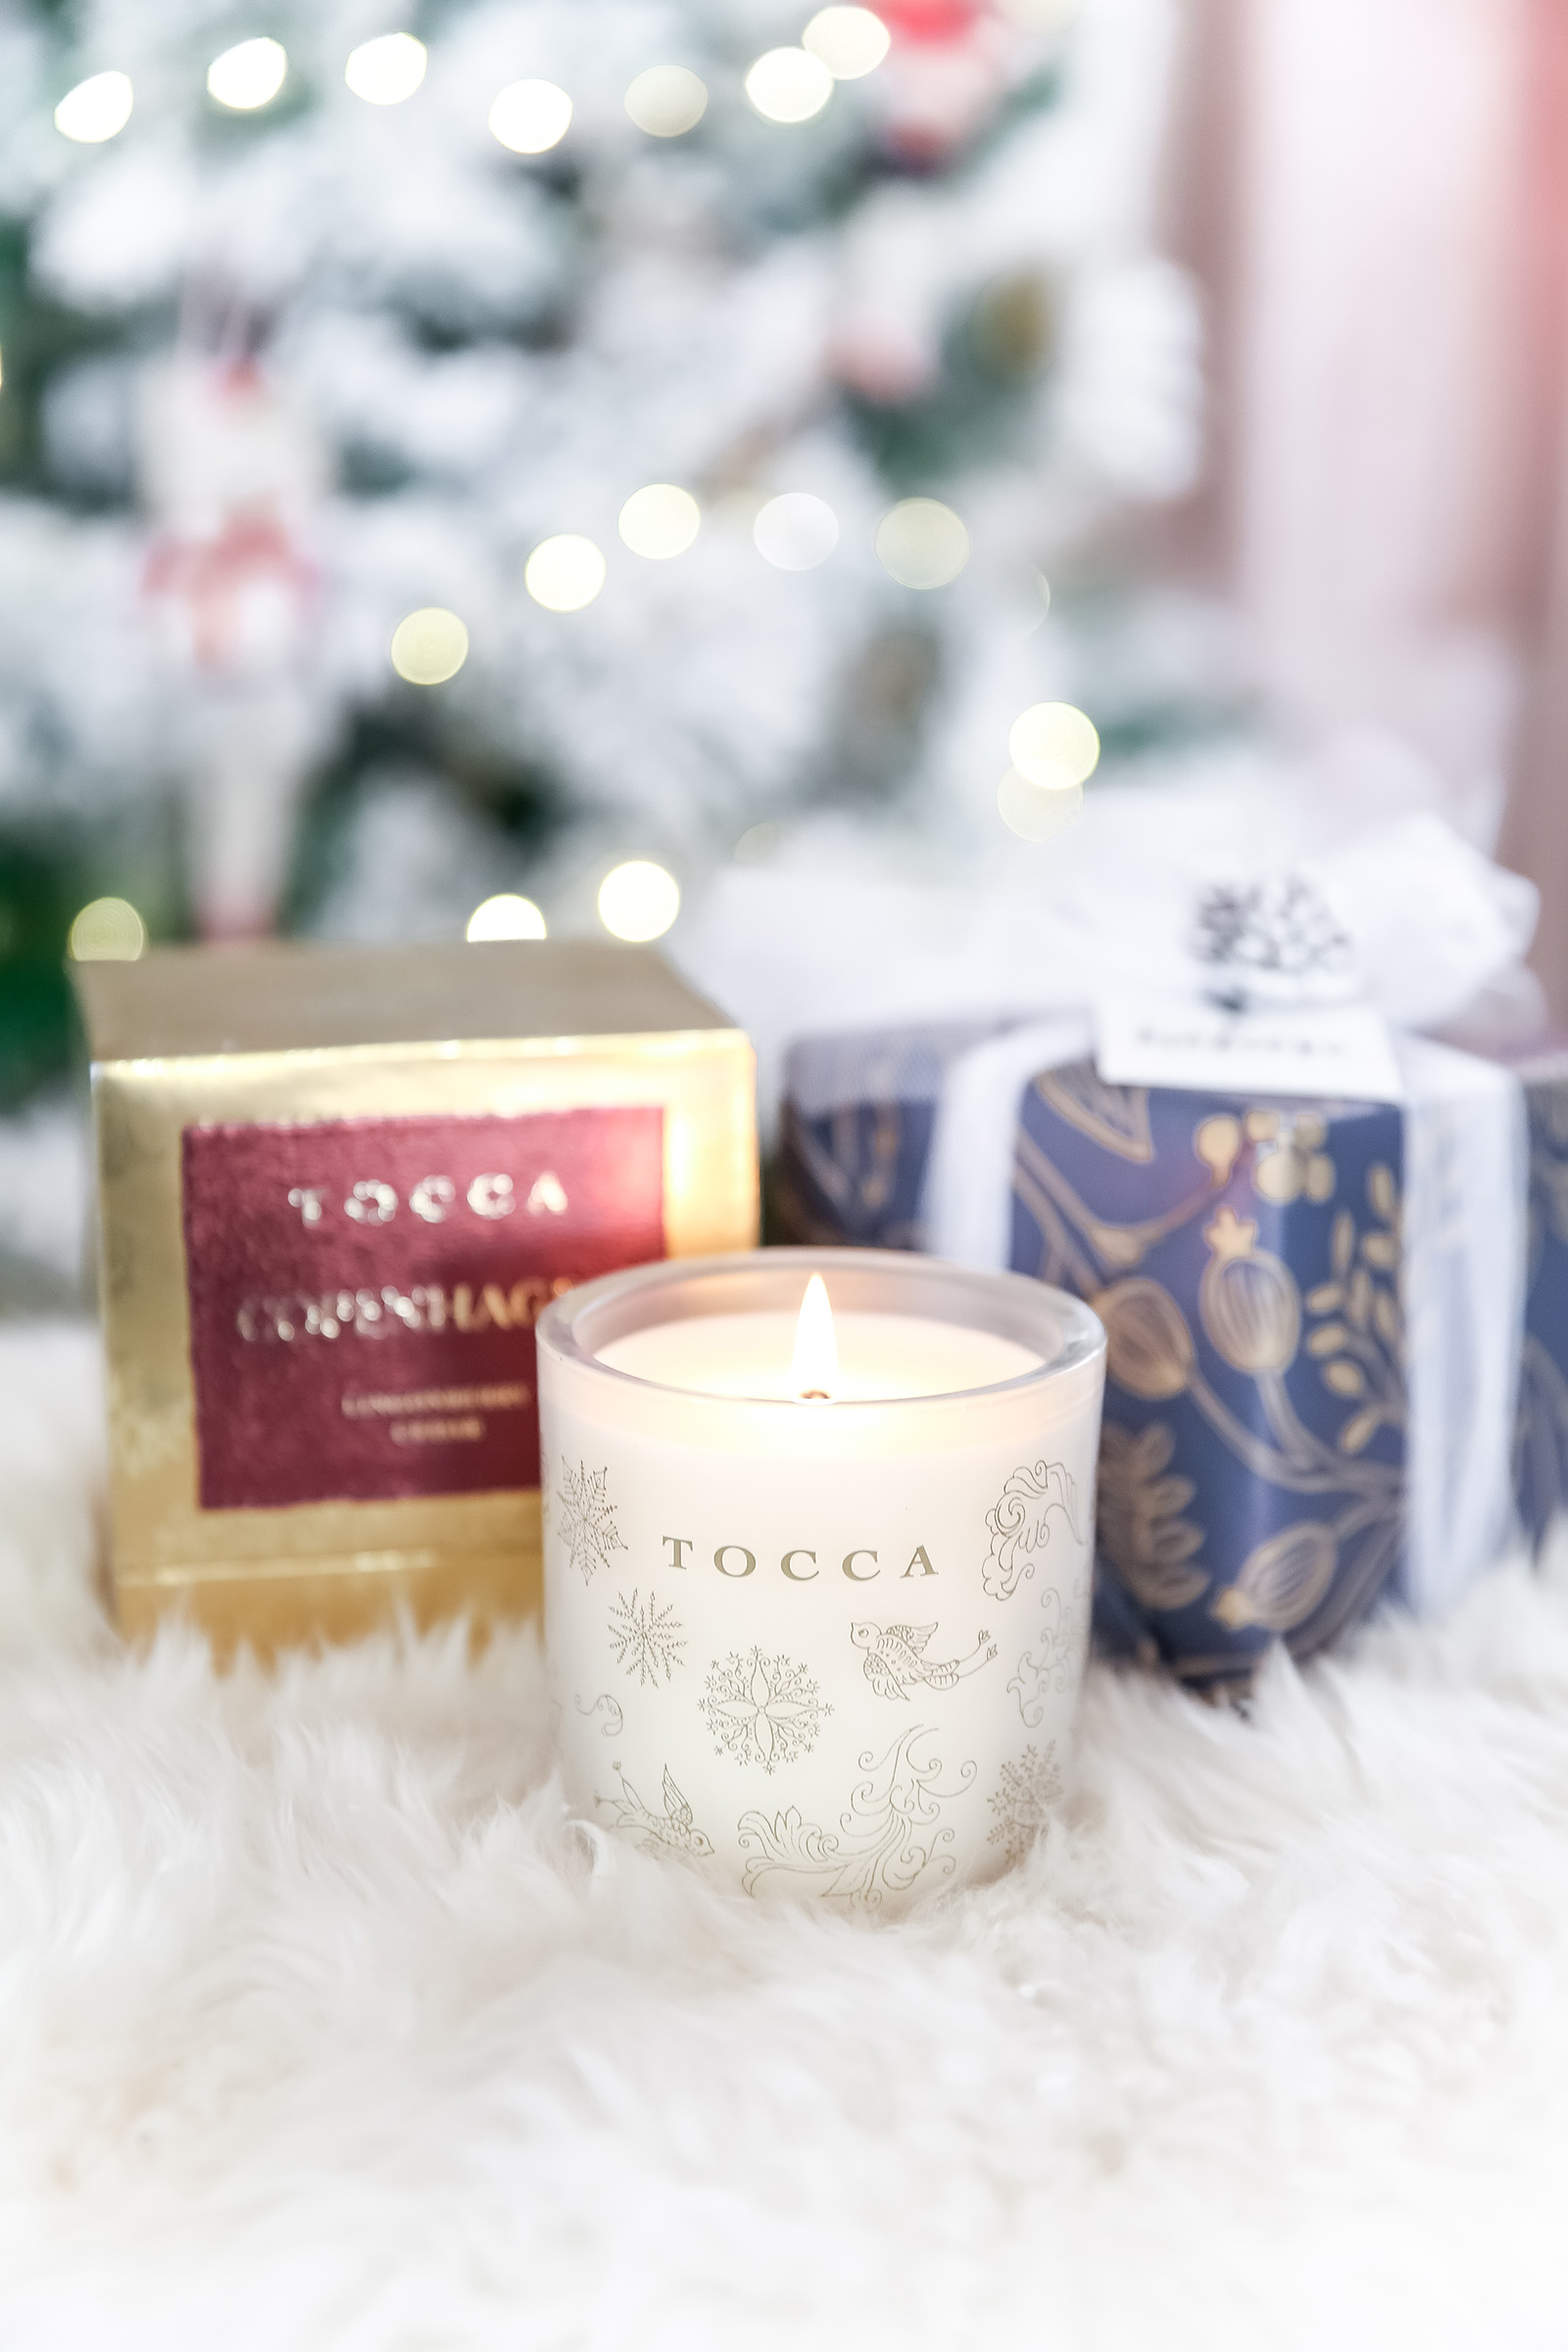 tocca holiday 2017